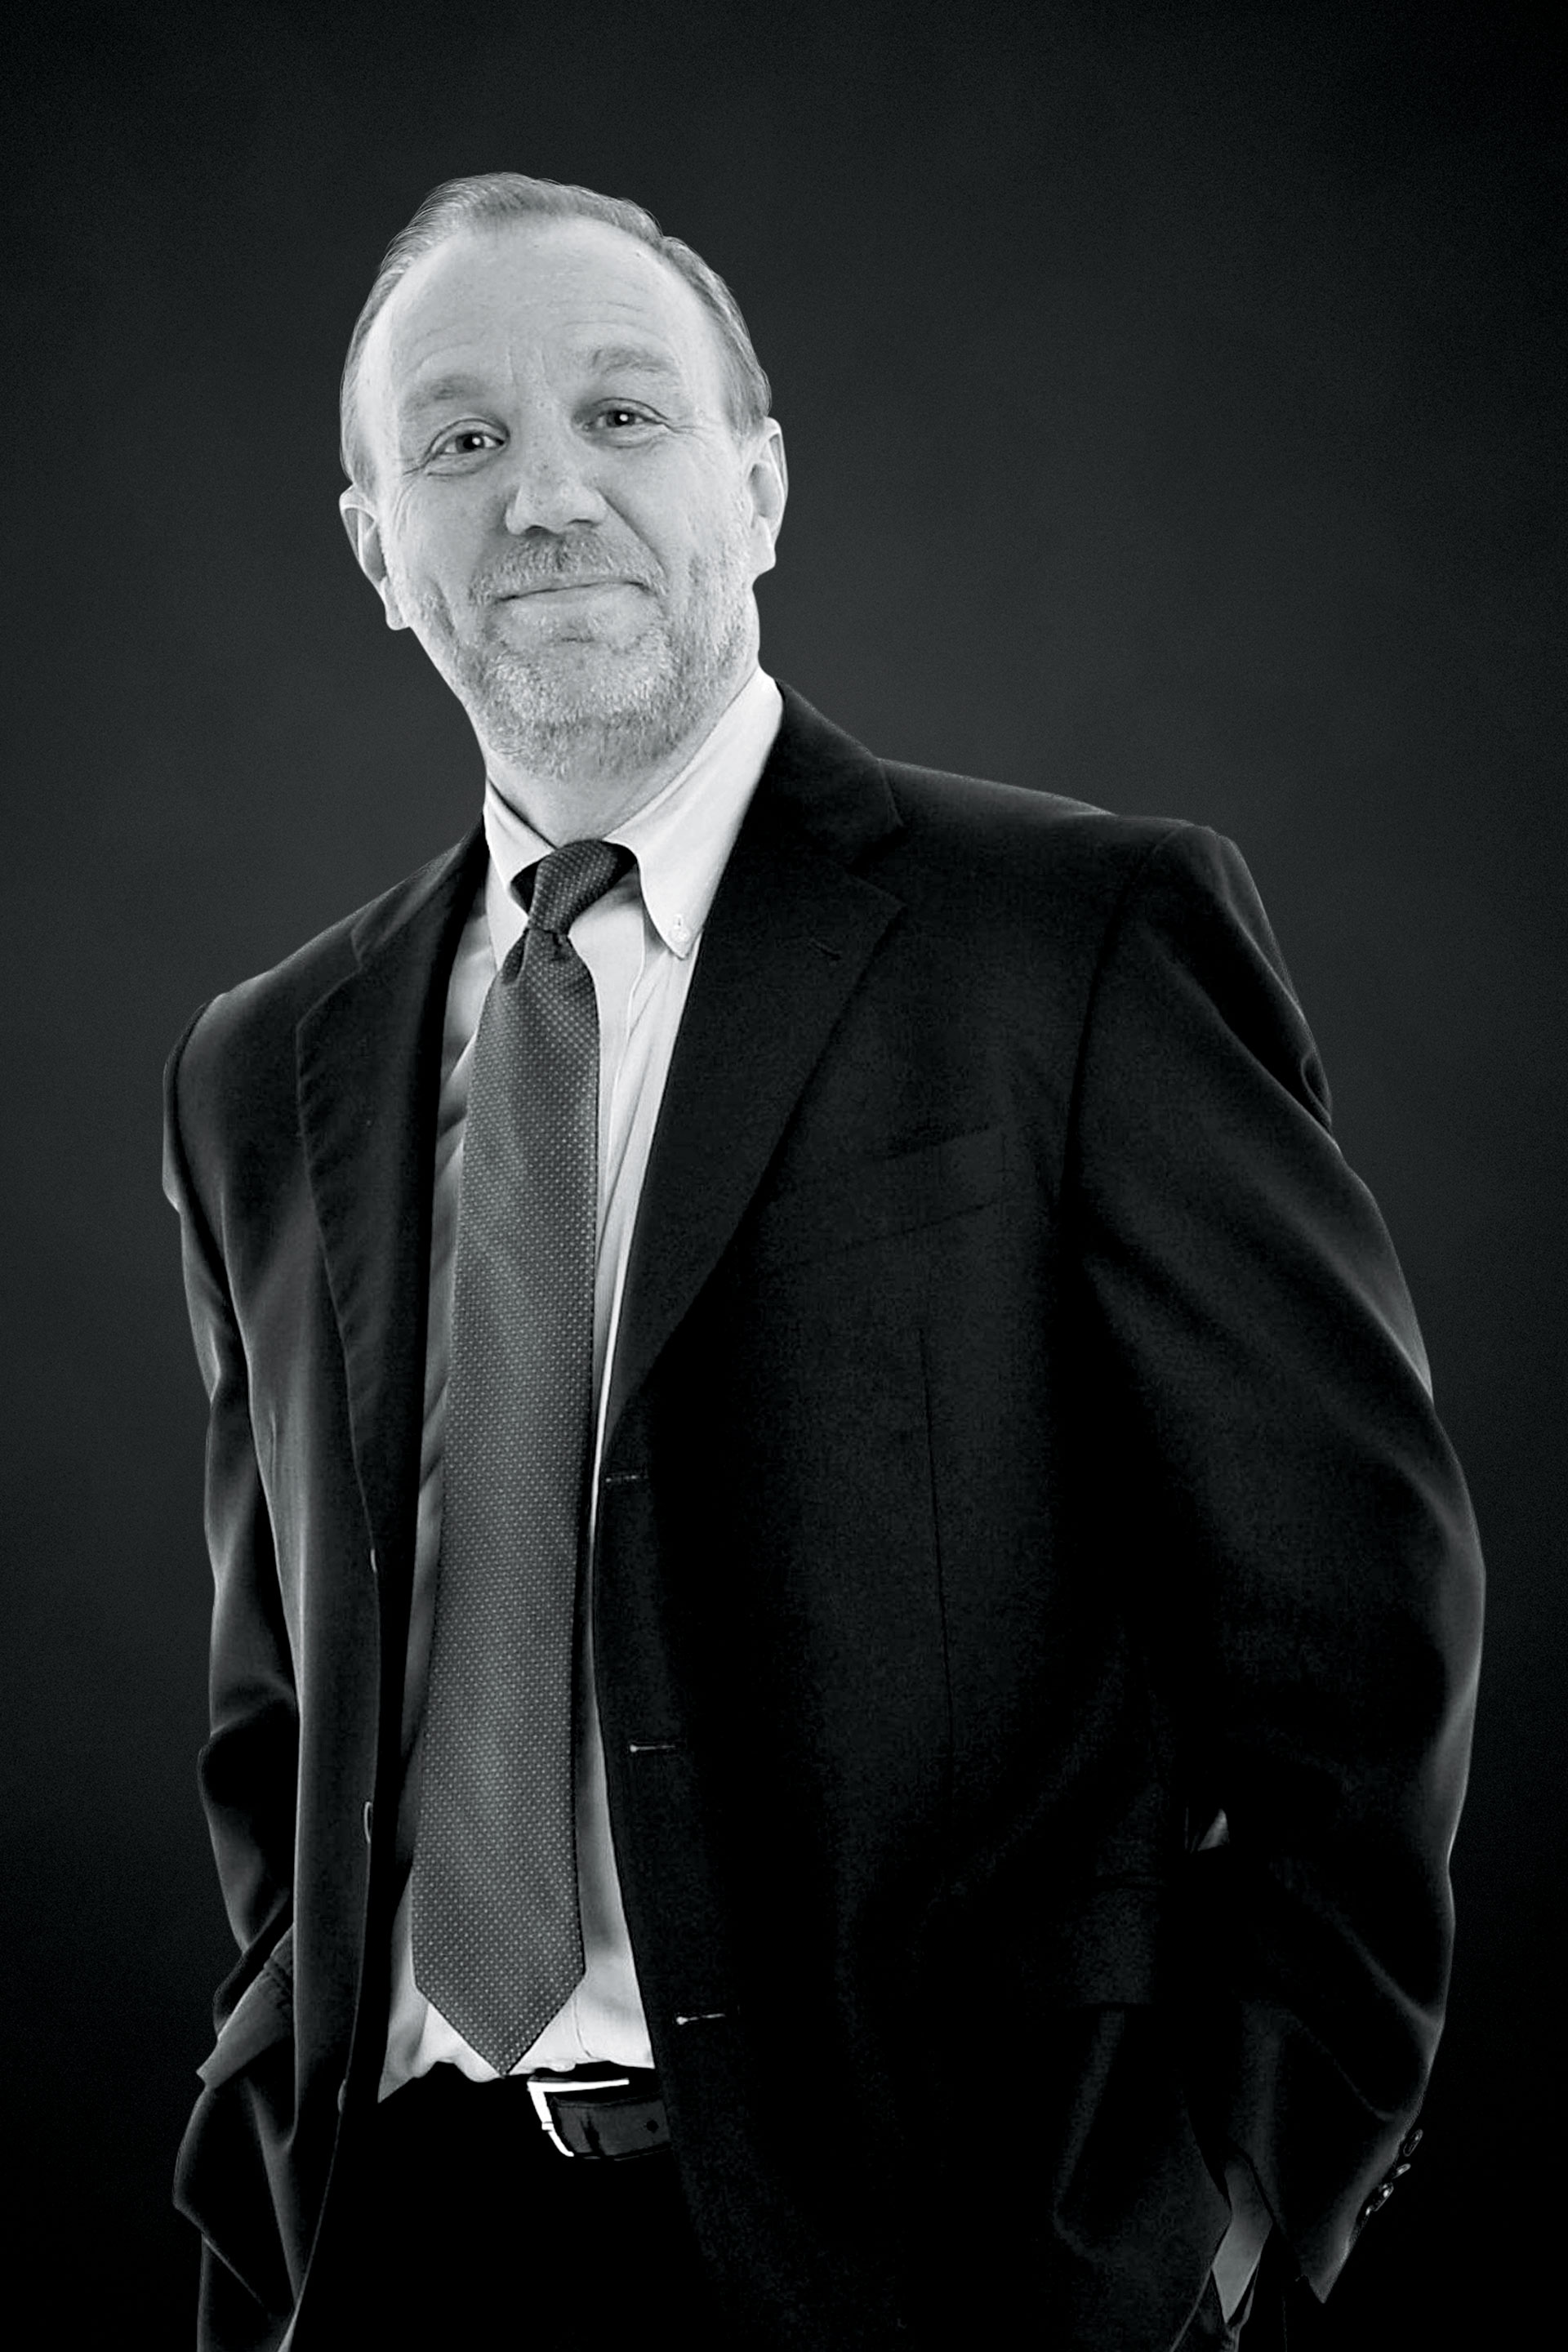 Jim Paulsen, Chief investment strategist for the Leuthold Group